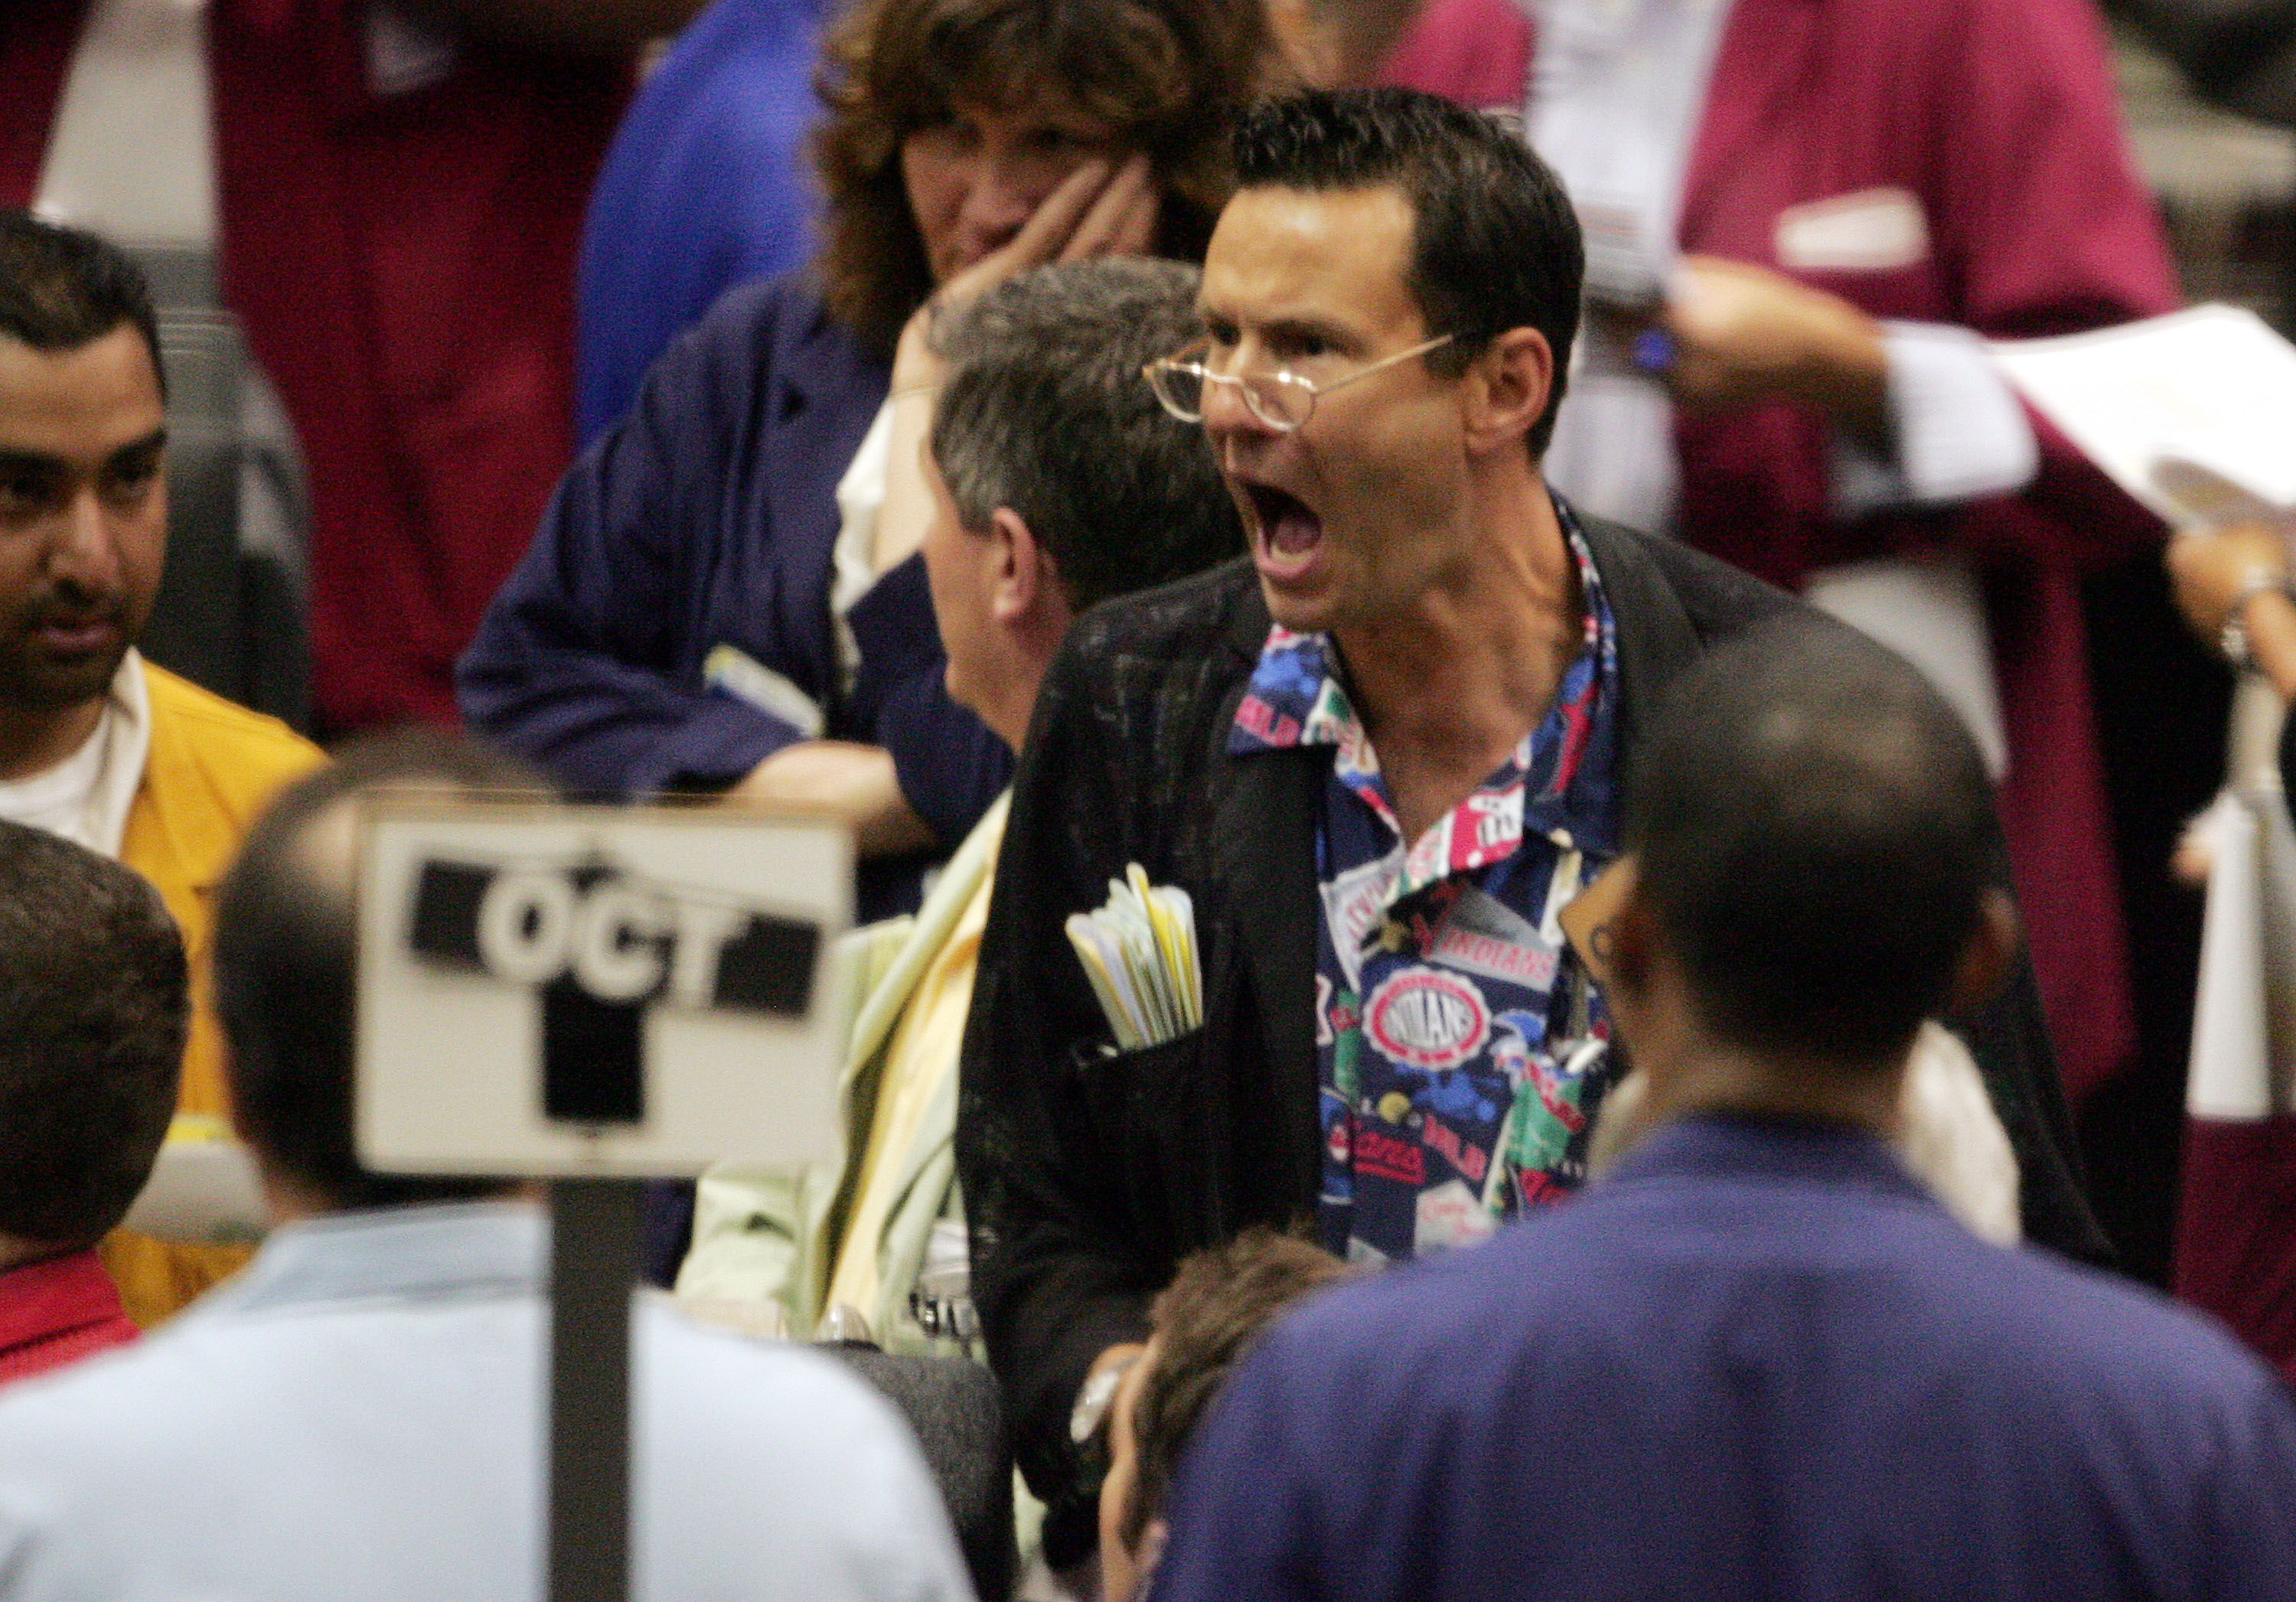 U.S. Cattle Futures Flat After Mad Cow Disease Reported